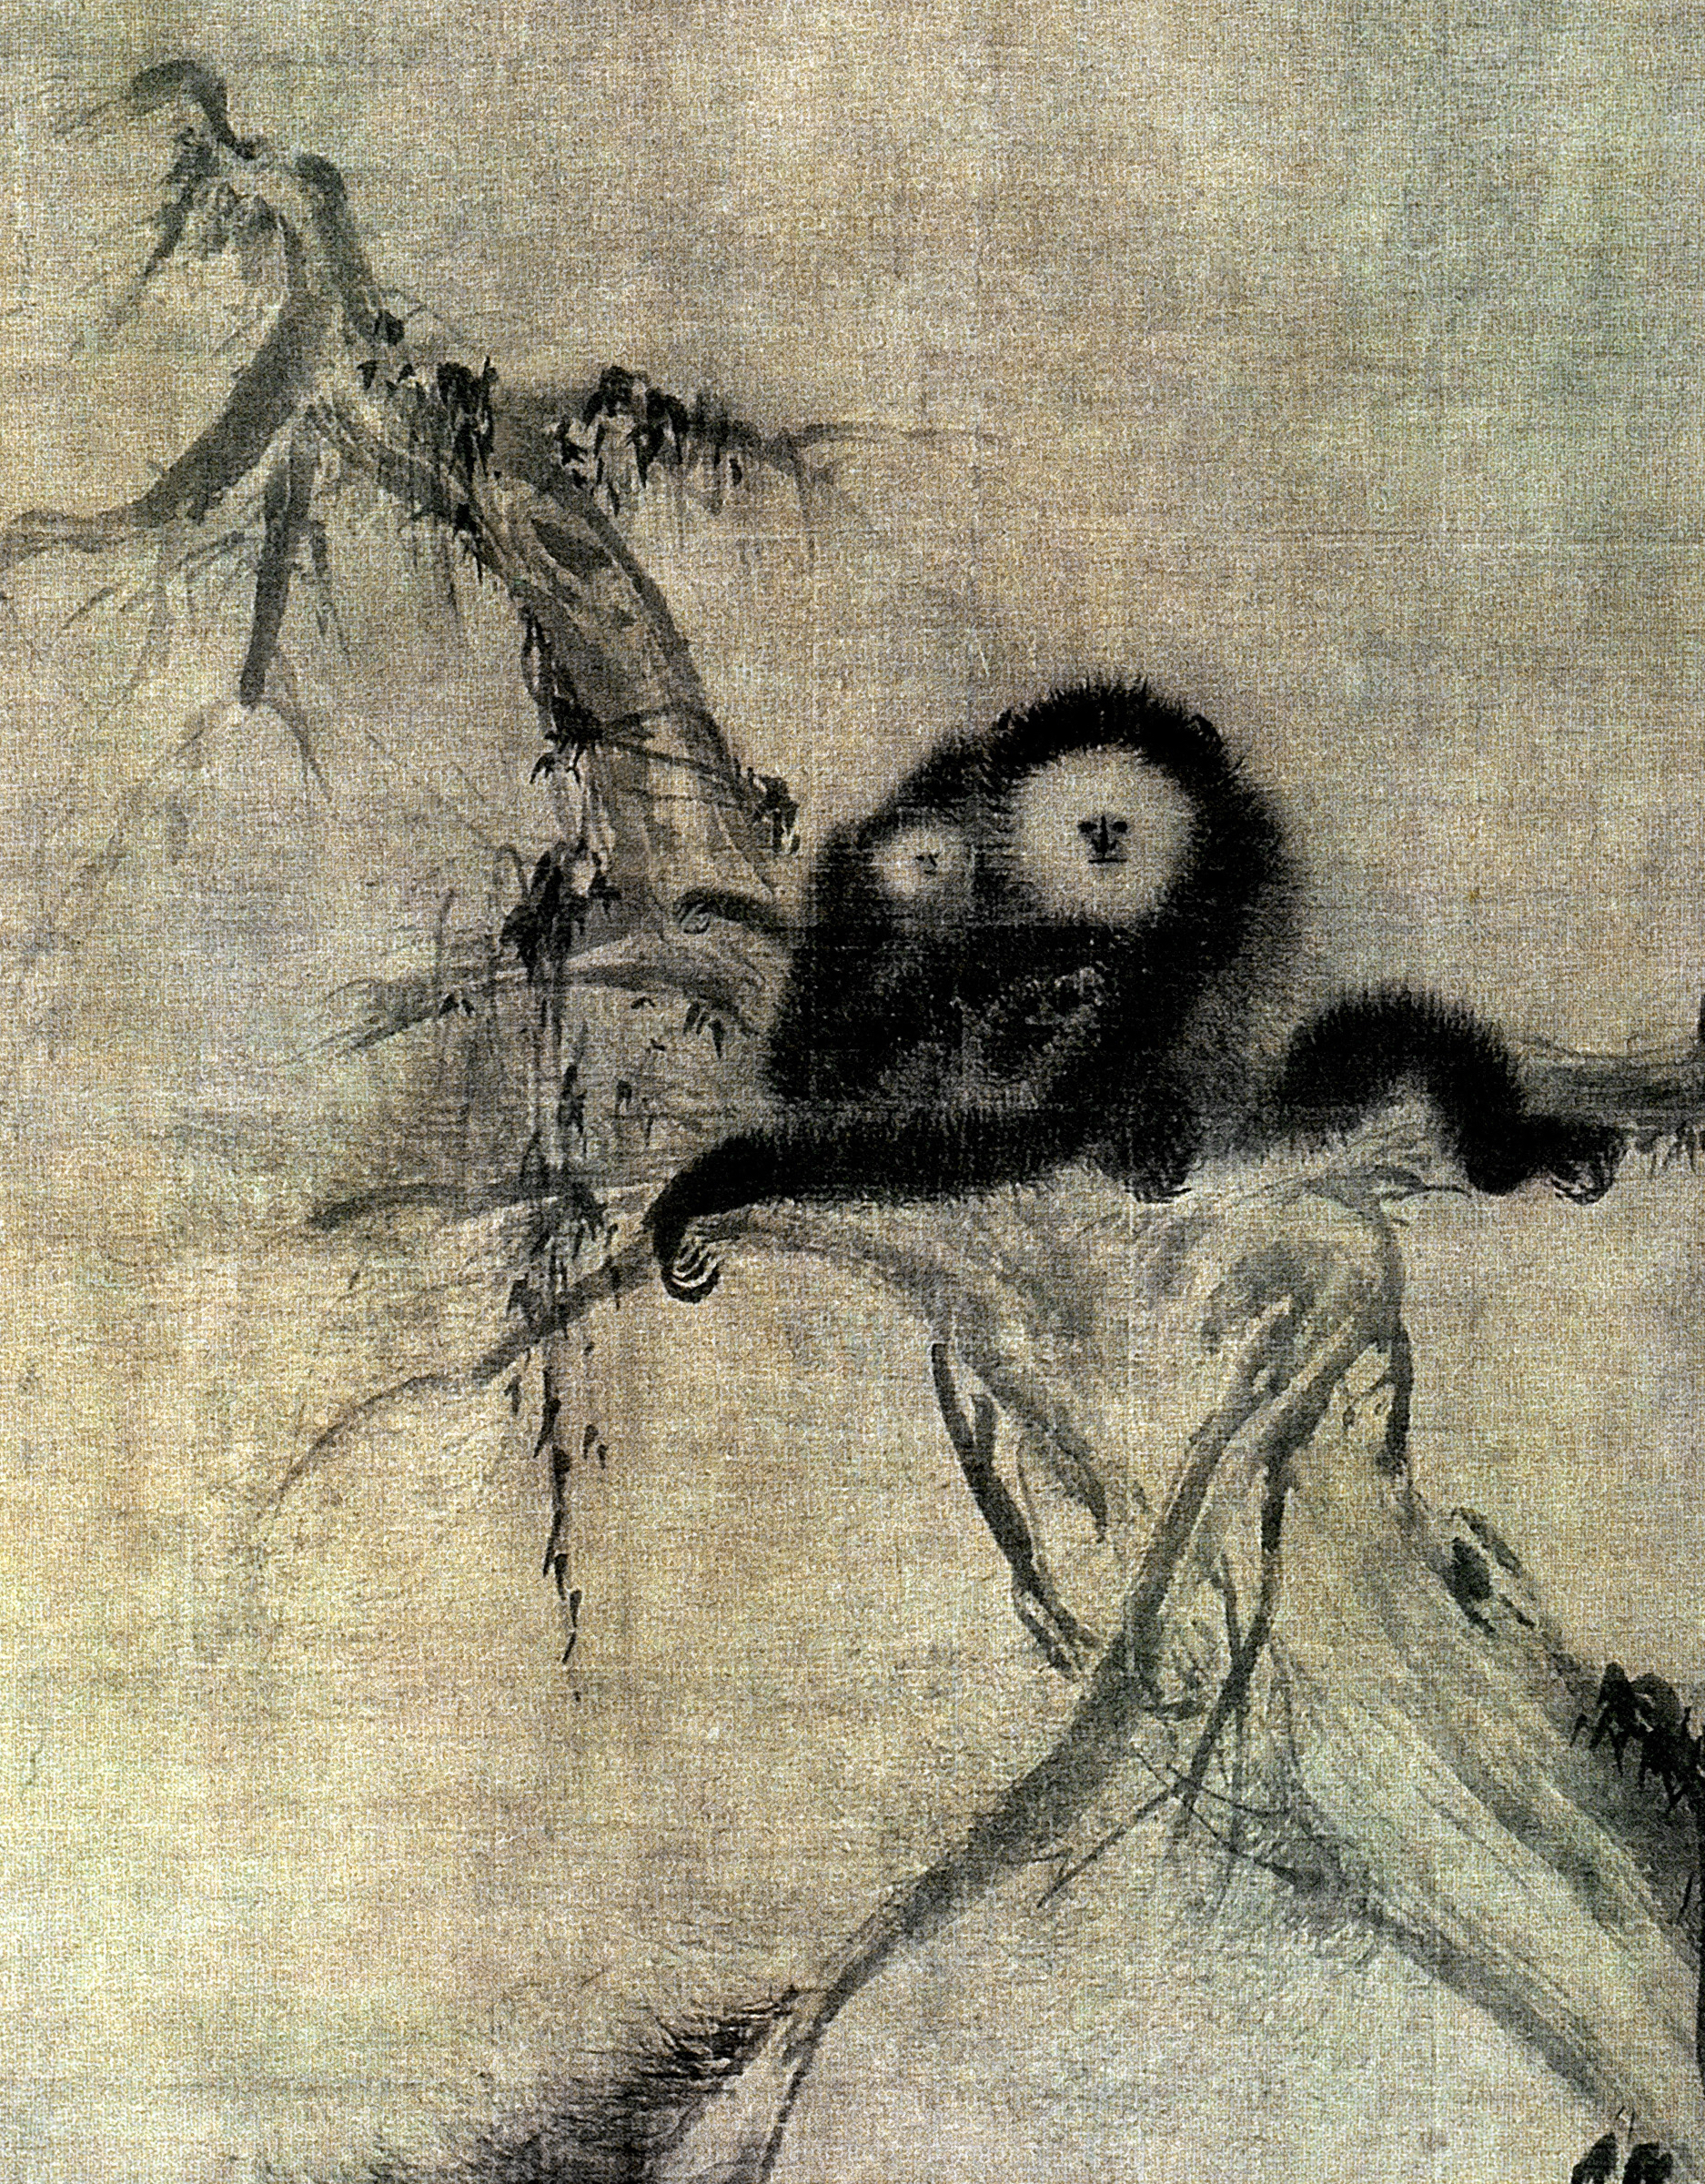 A painting of a gibbon mother and baby by Song Dynasty master painter Muqi (ca. early 13th century). Muqi's spare, expressive style influenced painters in Japan and Korea after Zen Buddhists rediscovered his work in later centuries. Image courtesy of the Huntington Archive, University of Chicago